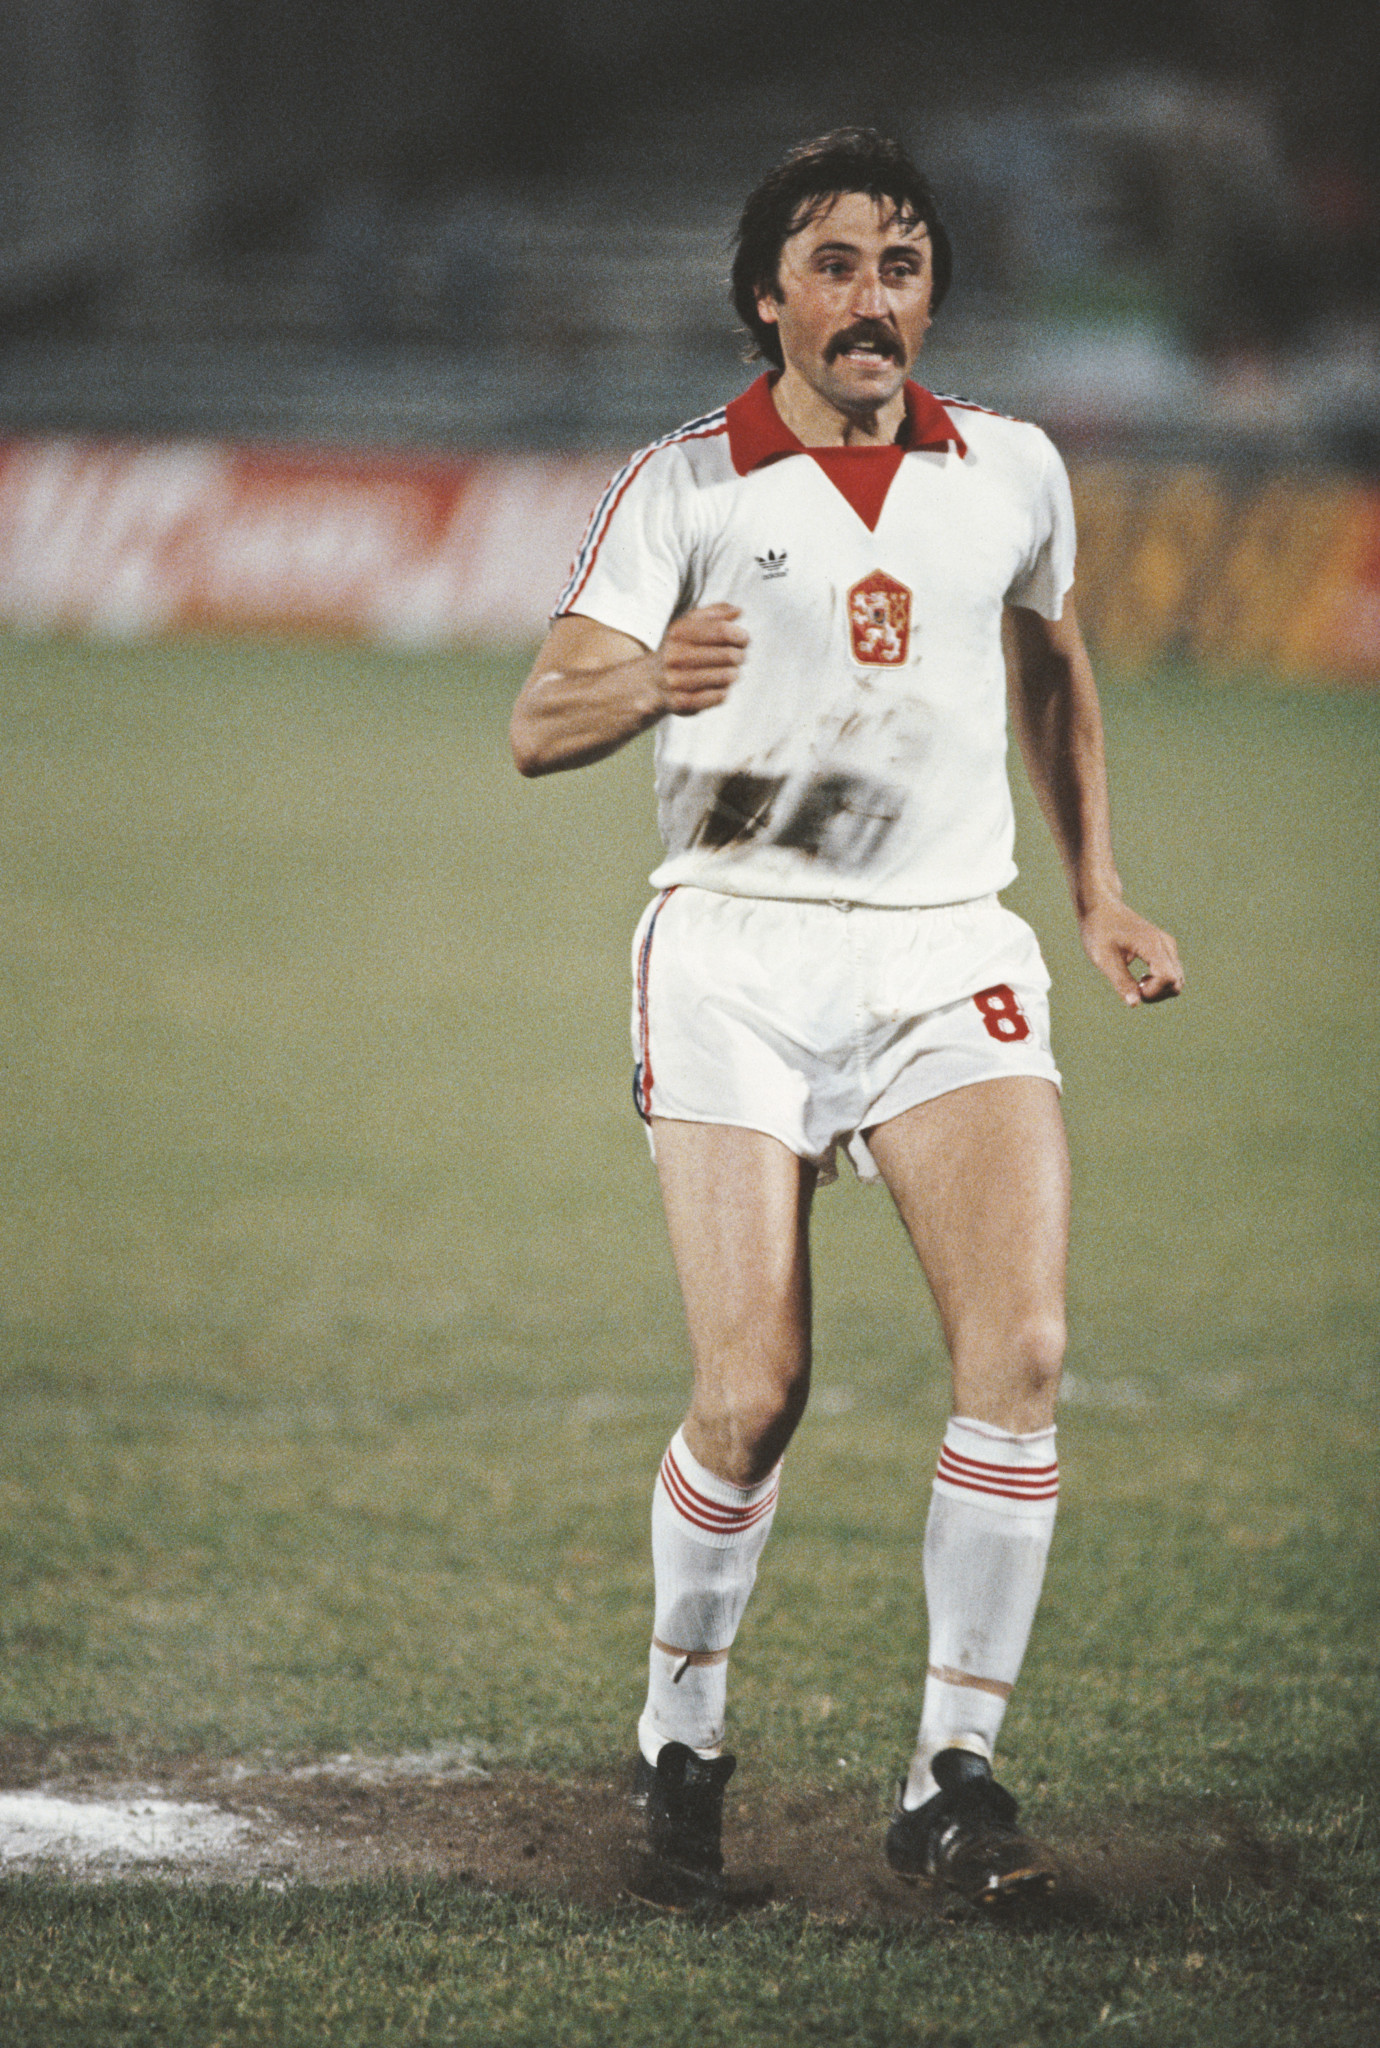 Antonin Panenka was famous for his chipped penalty kicks, which have become known as